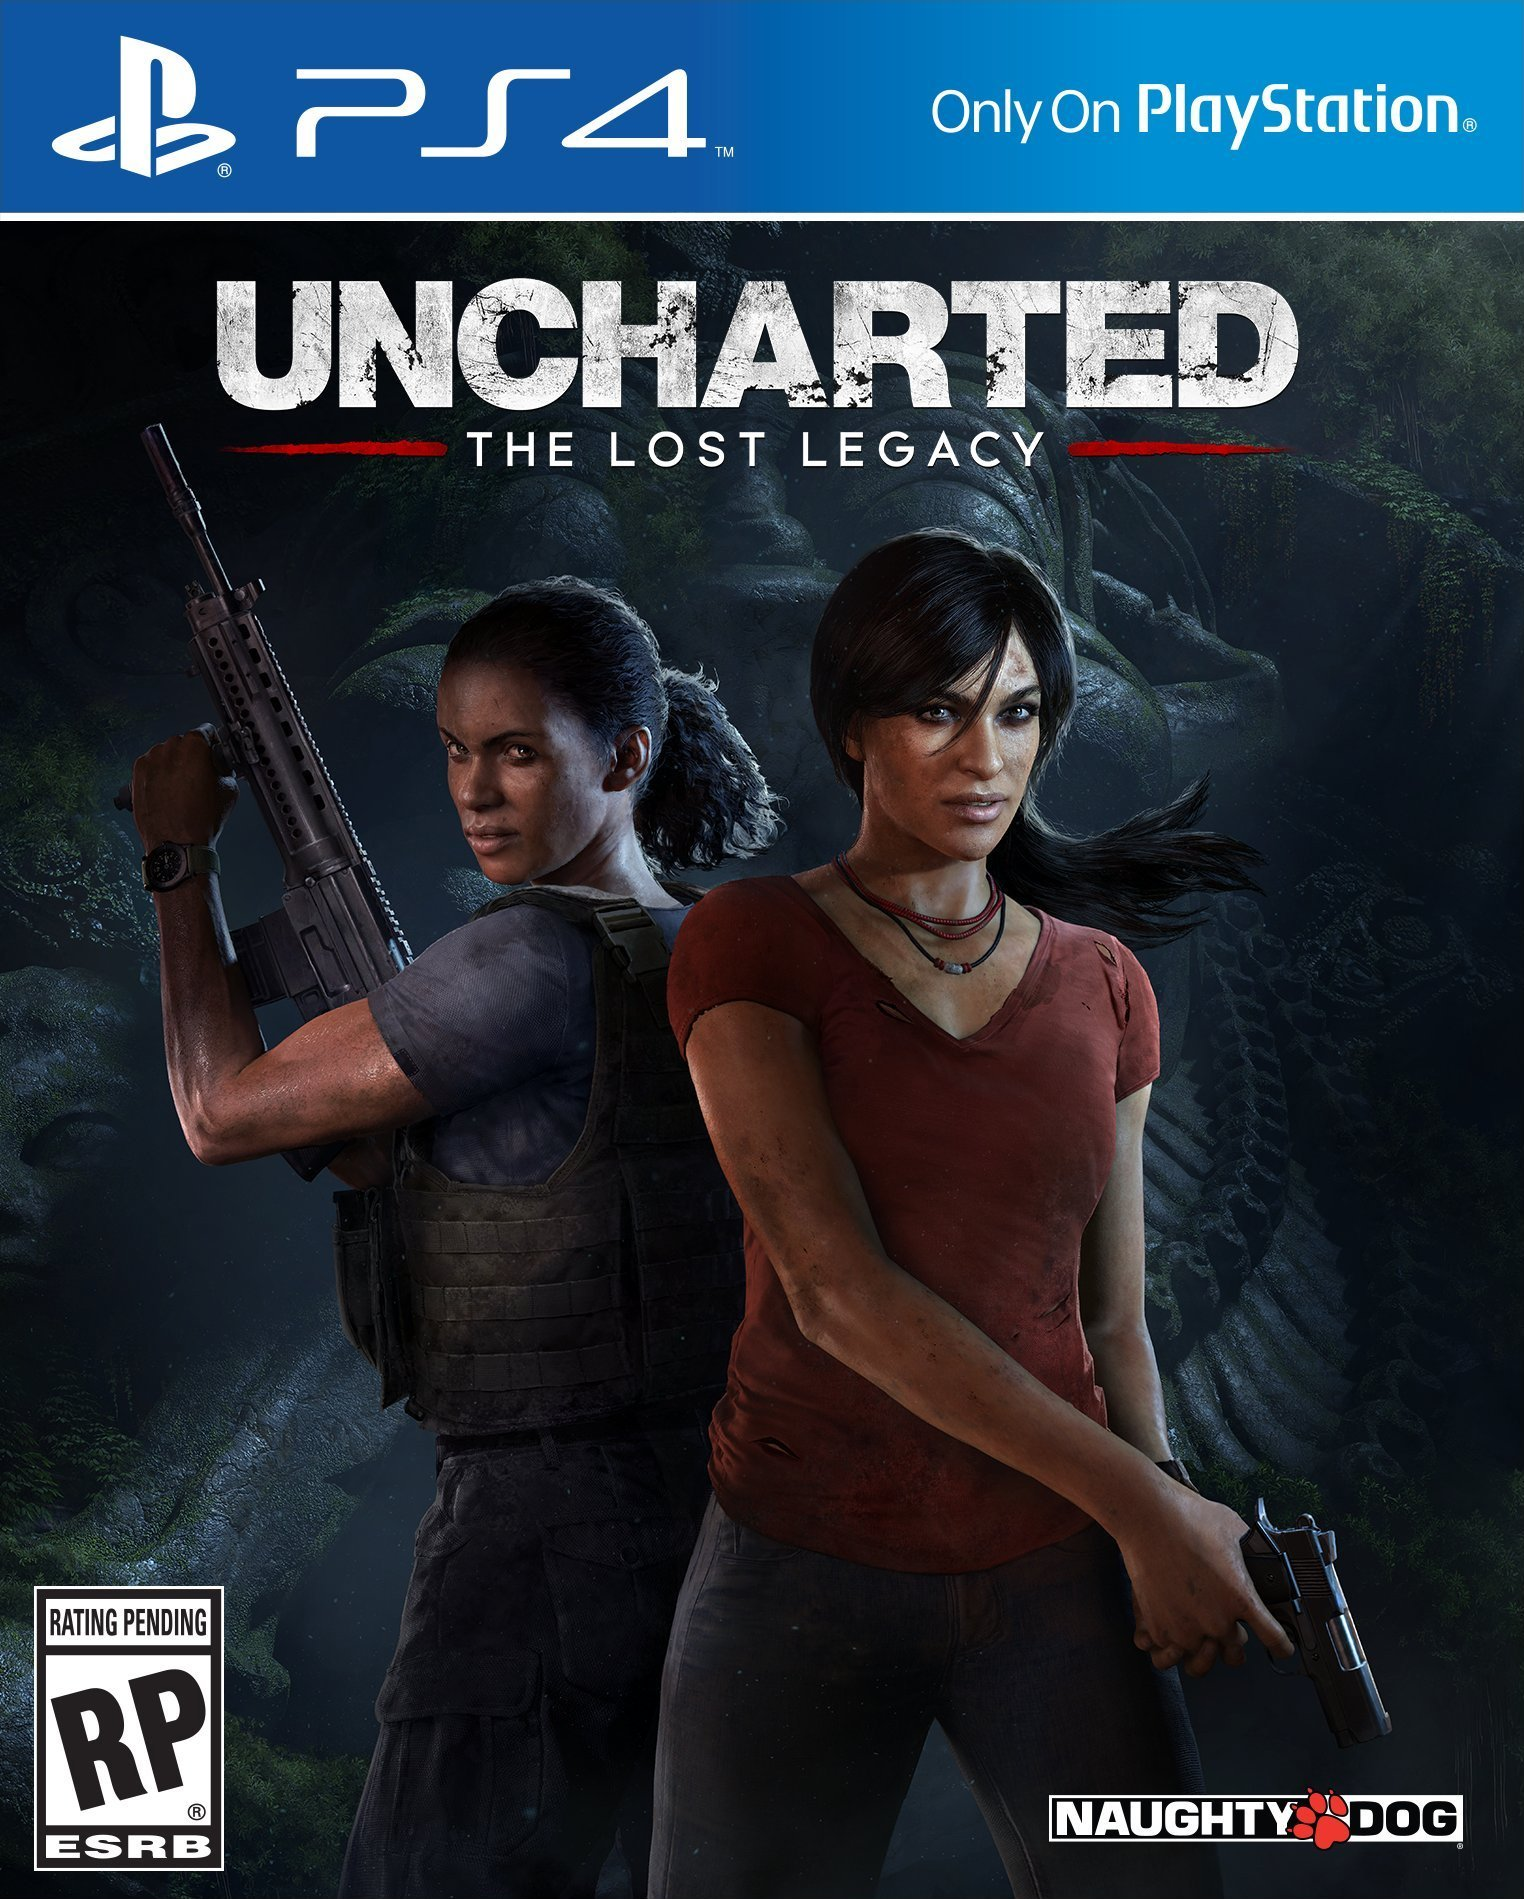 Uncharted-The-Lost-Legacy-Screen-Boxart.jpg